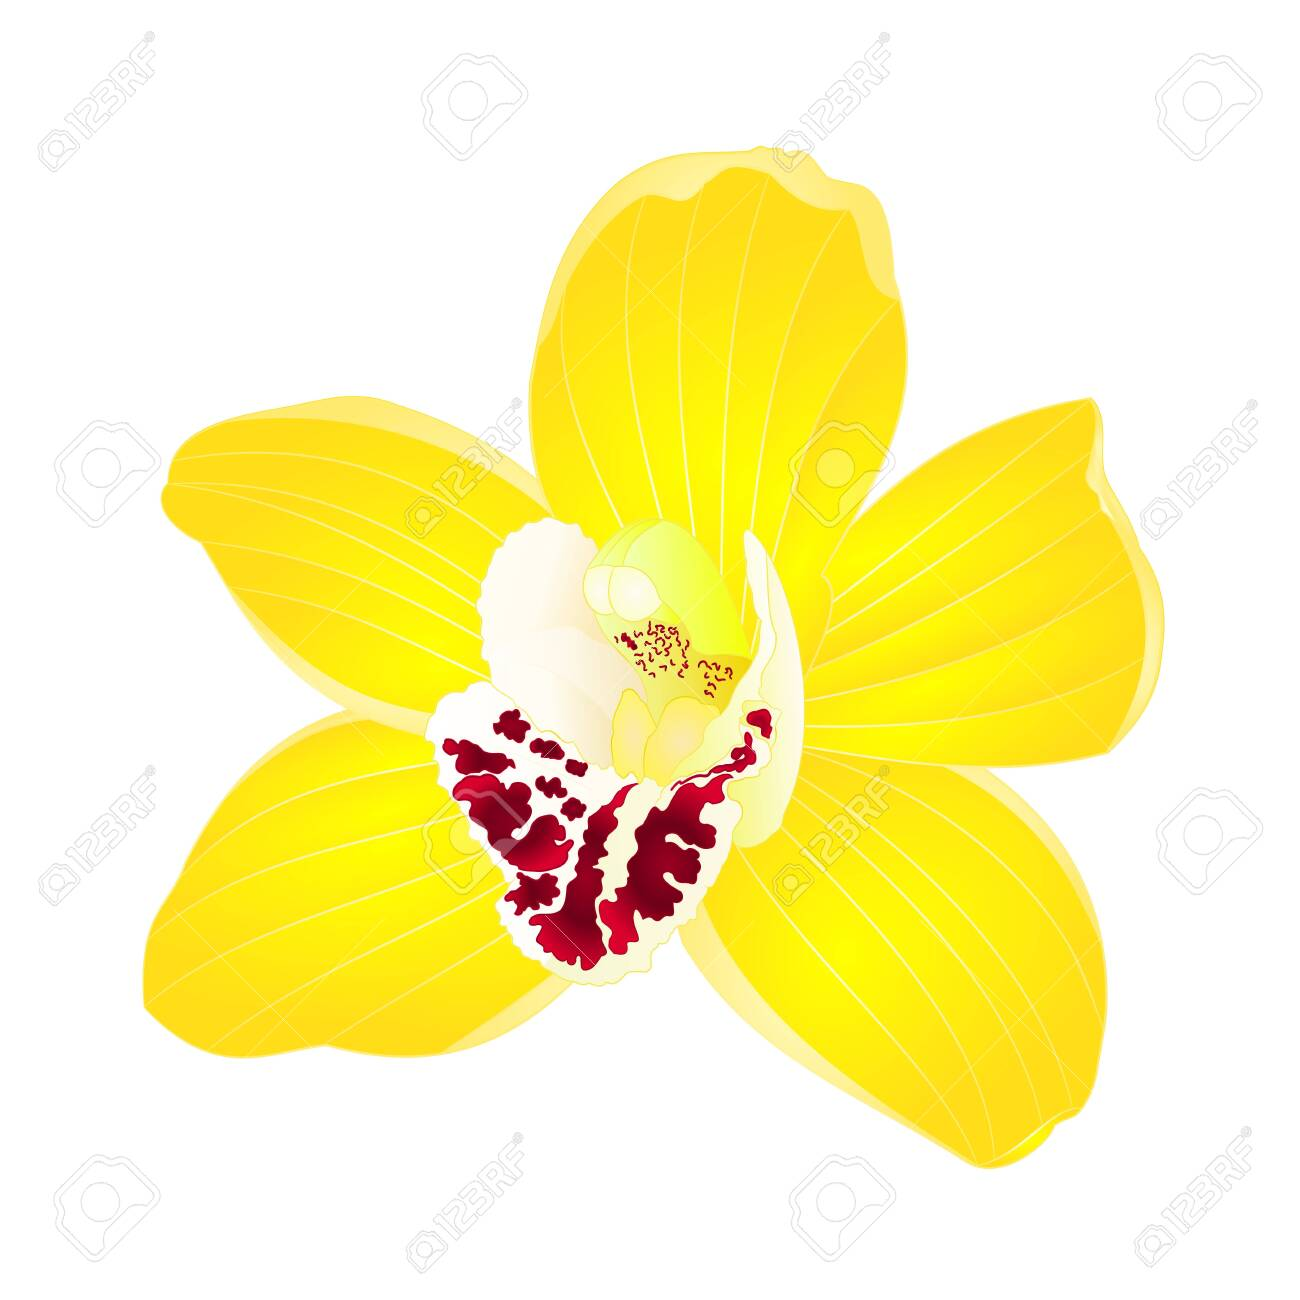 Tropical Orchid Cymbidium Yellow Flower Realistic On White Background Royalty Free Cliparts Vectors And Stock Illustration Image 123815521